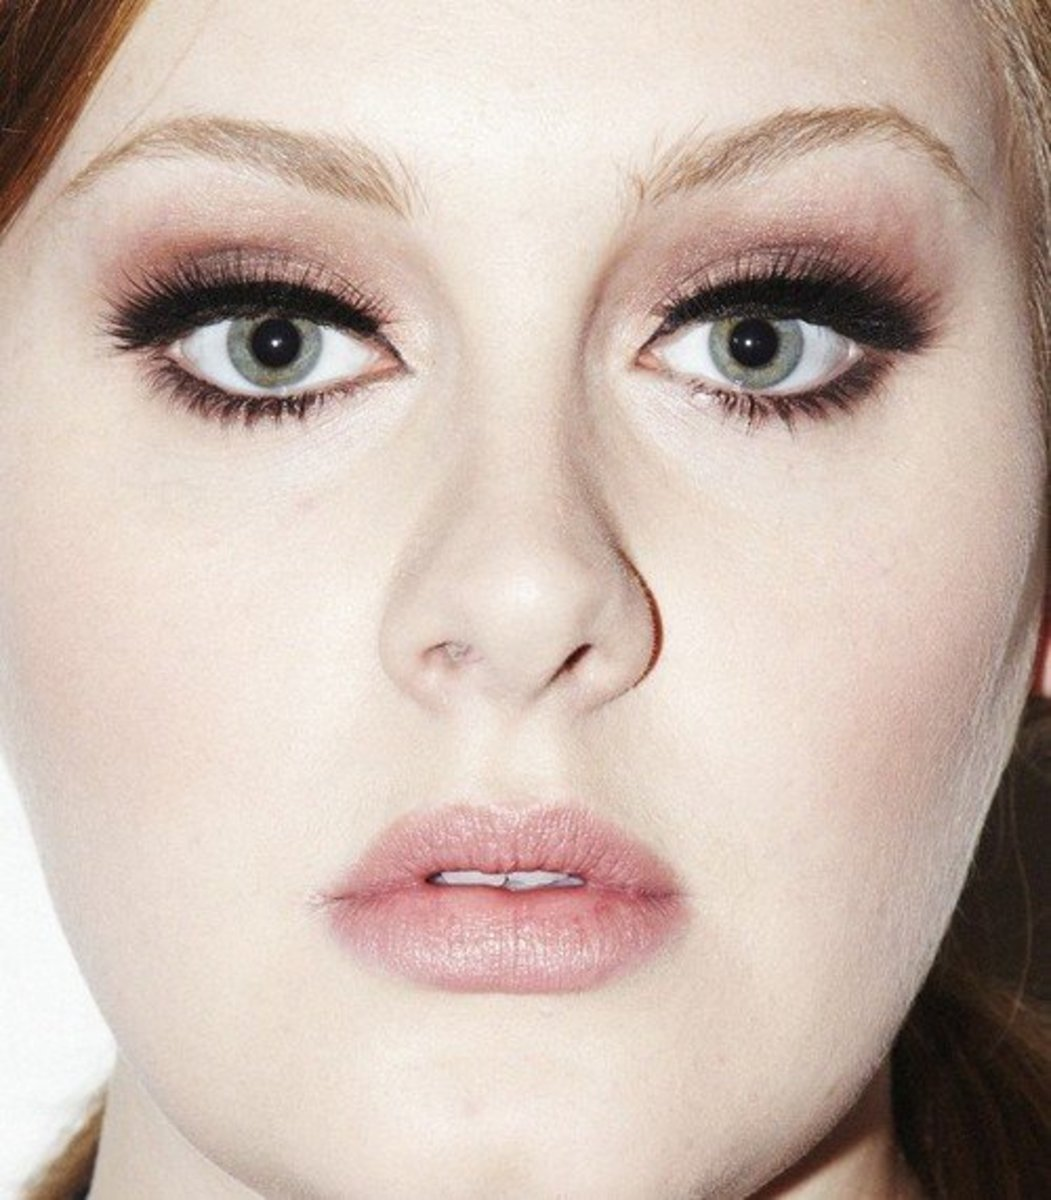 Dark shadow will help make large eyes look smaller, as it does for Adele.